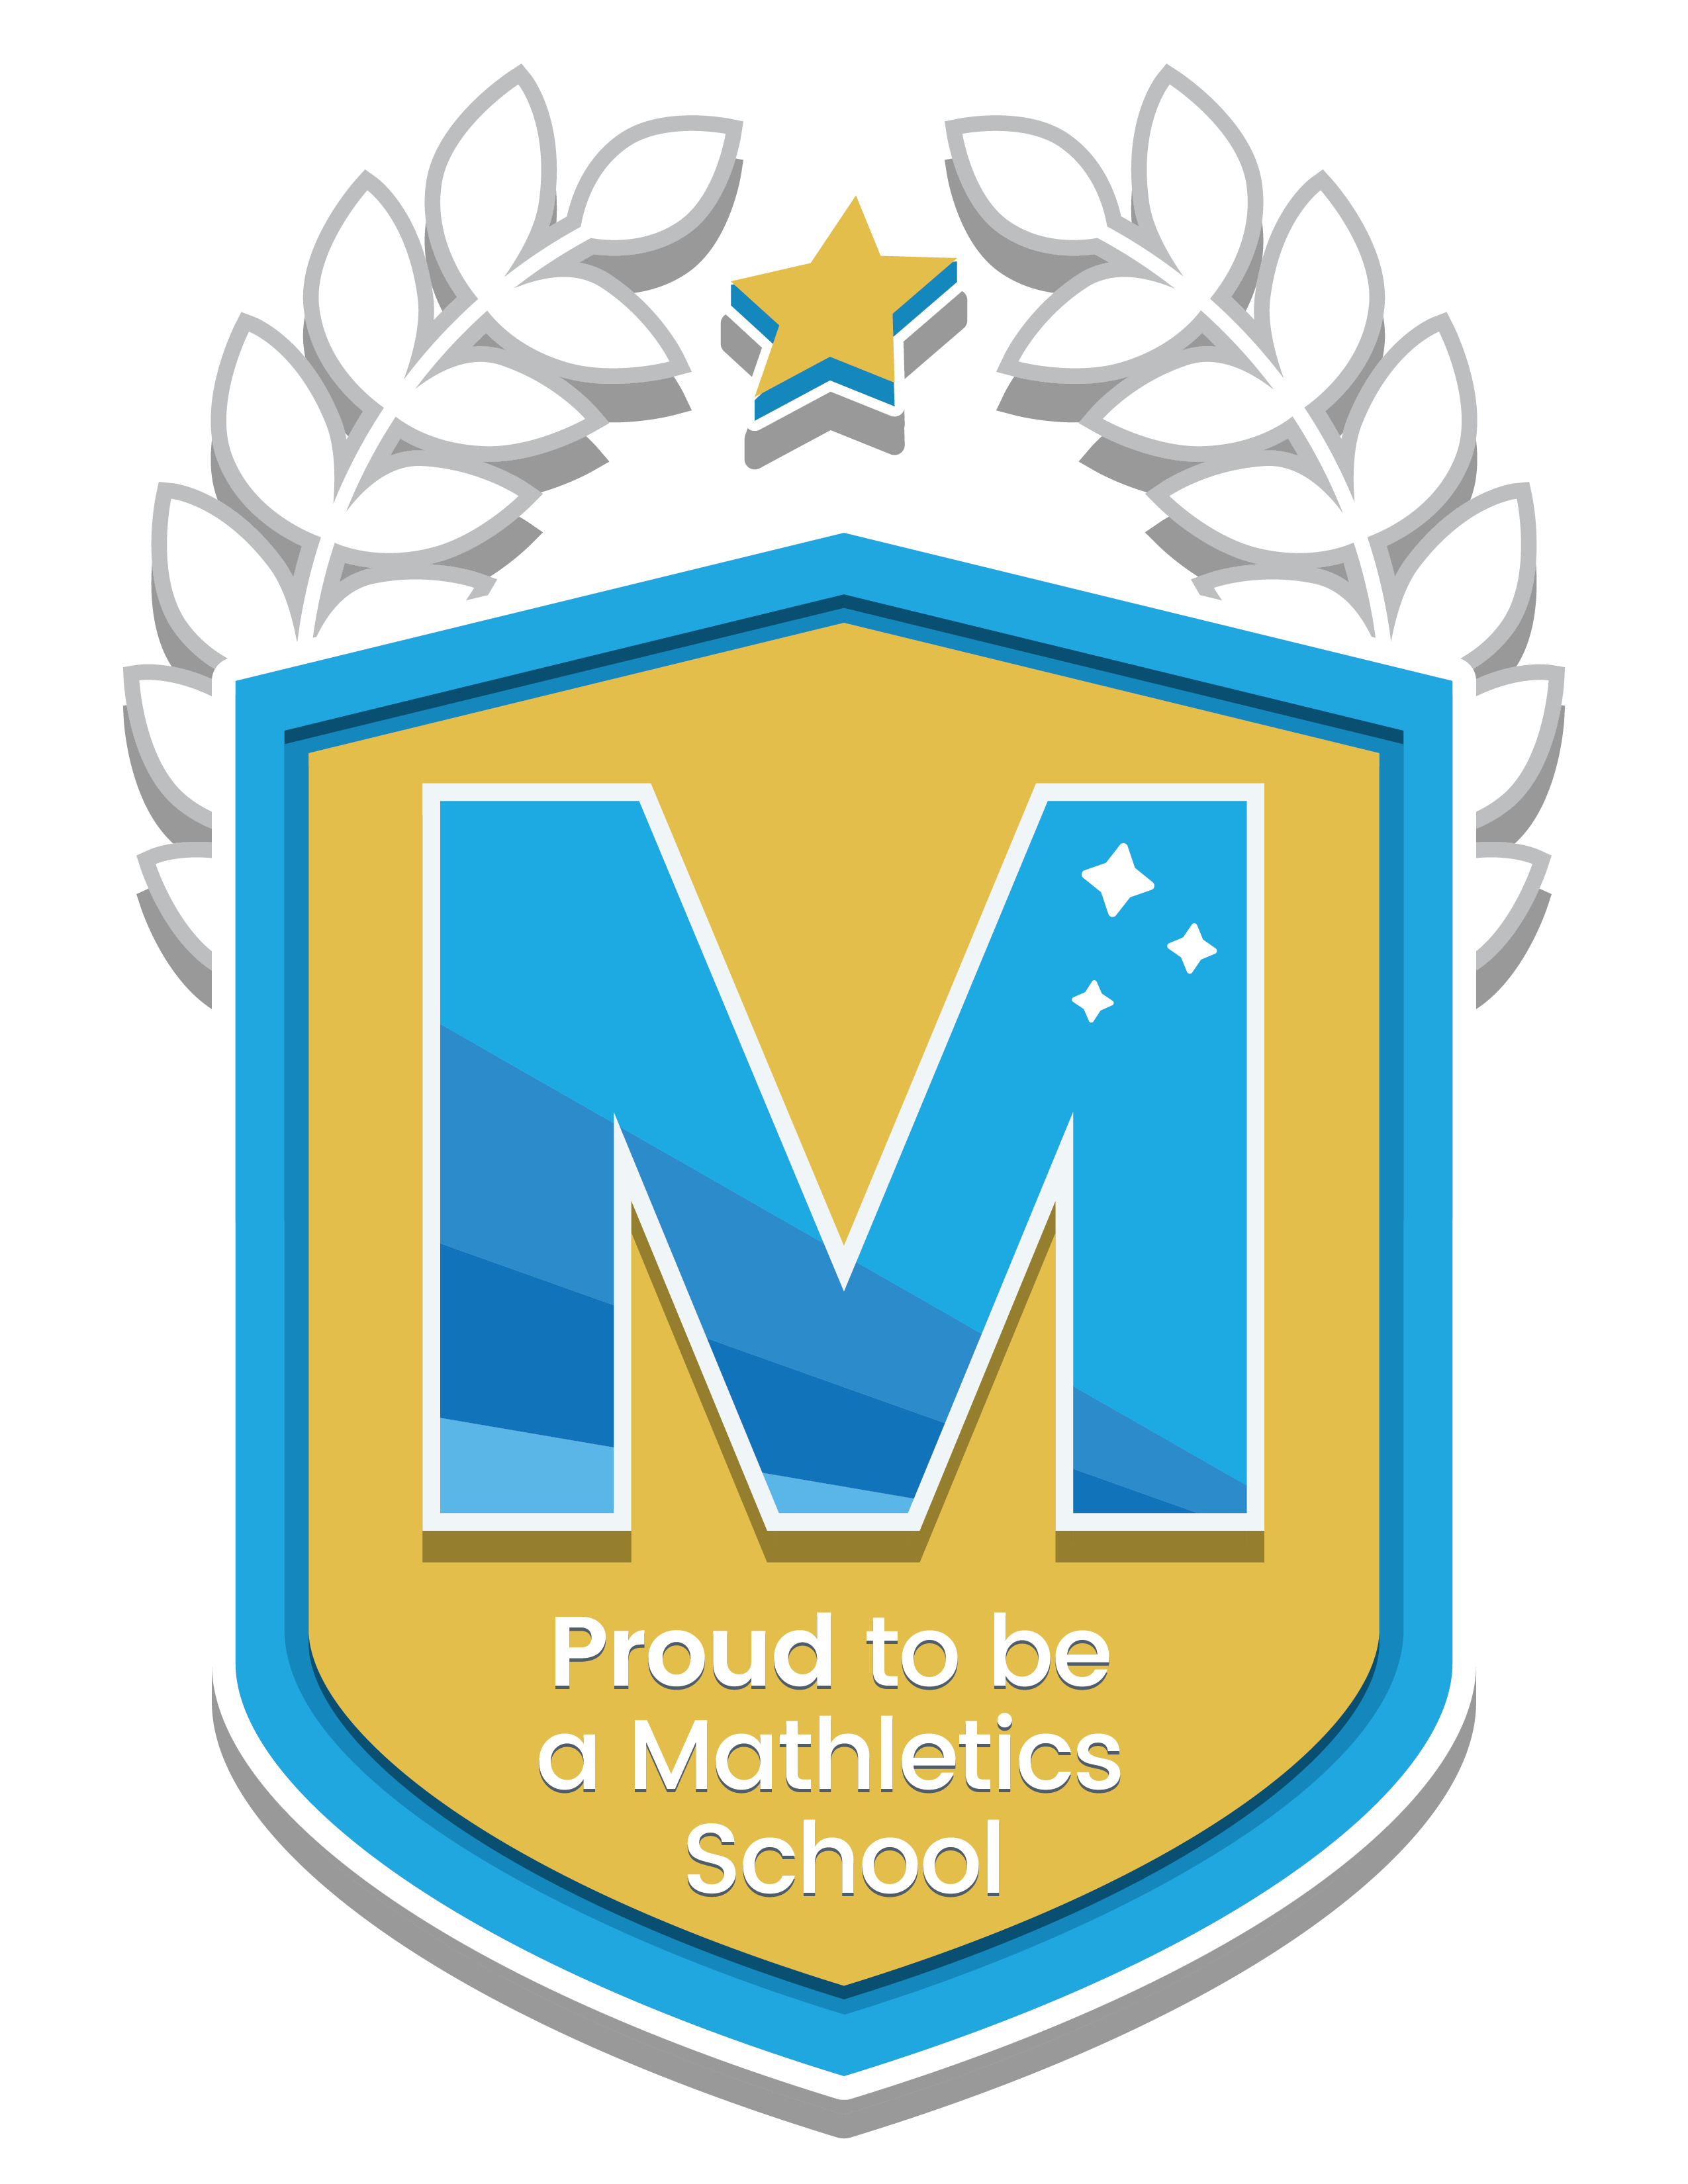 Mathletics-Crest-1-Proud-to-be-a-Mathetics-School